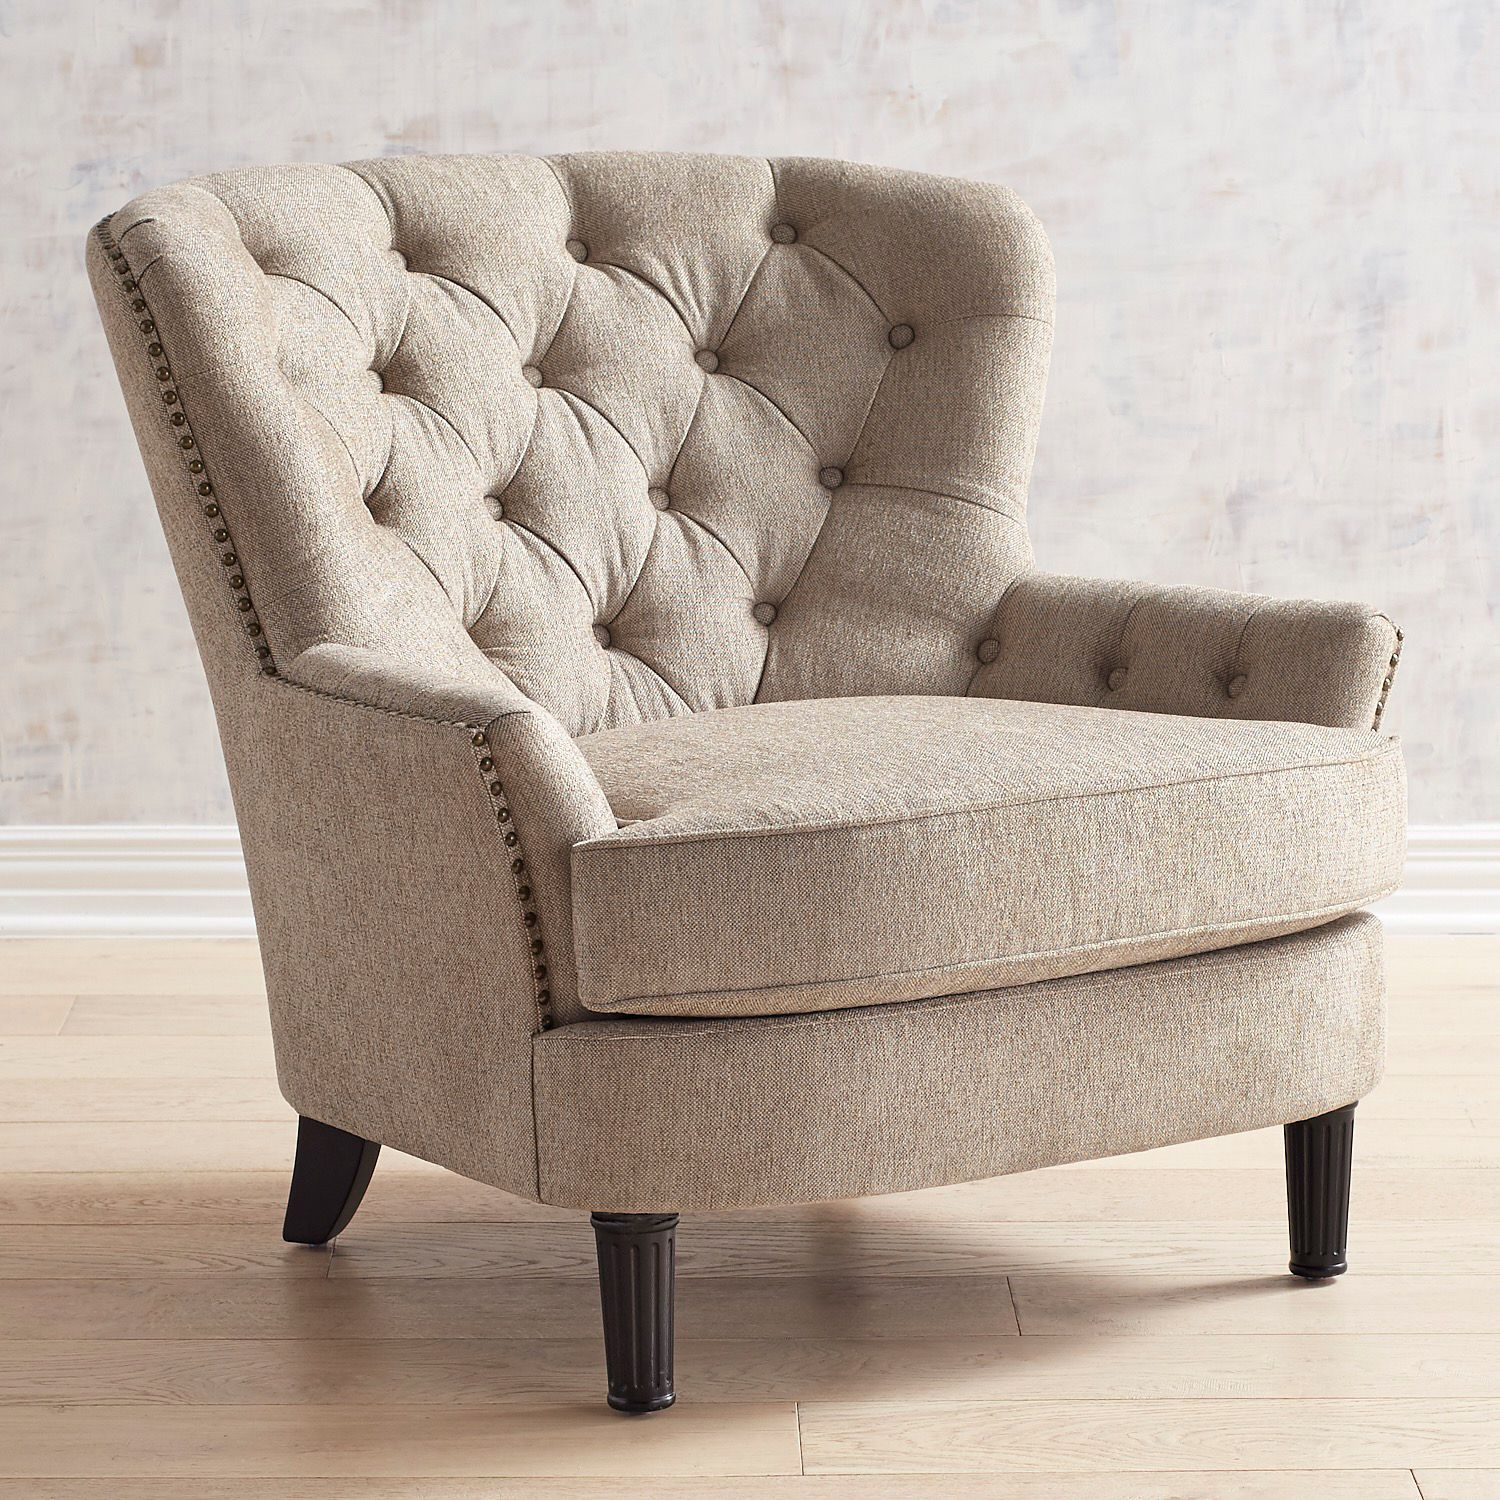 Eliza Oatmeal Armchair Pier 1 Armchair Retro Dining Chairs Cheap Living Room Sets Pier living room chairs